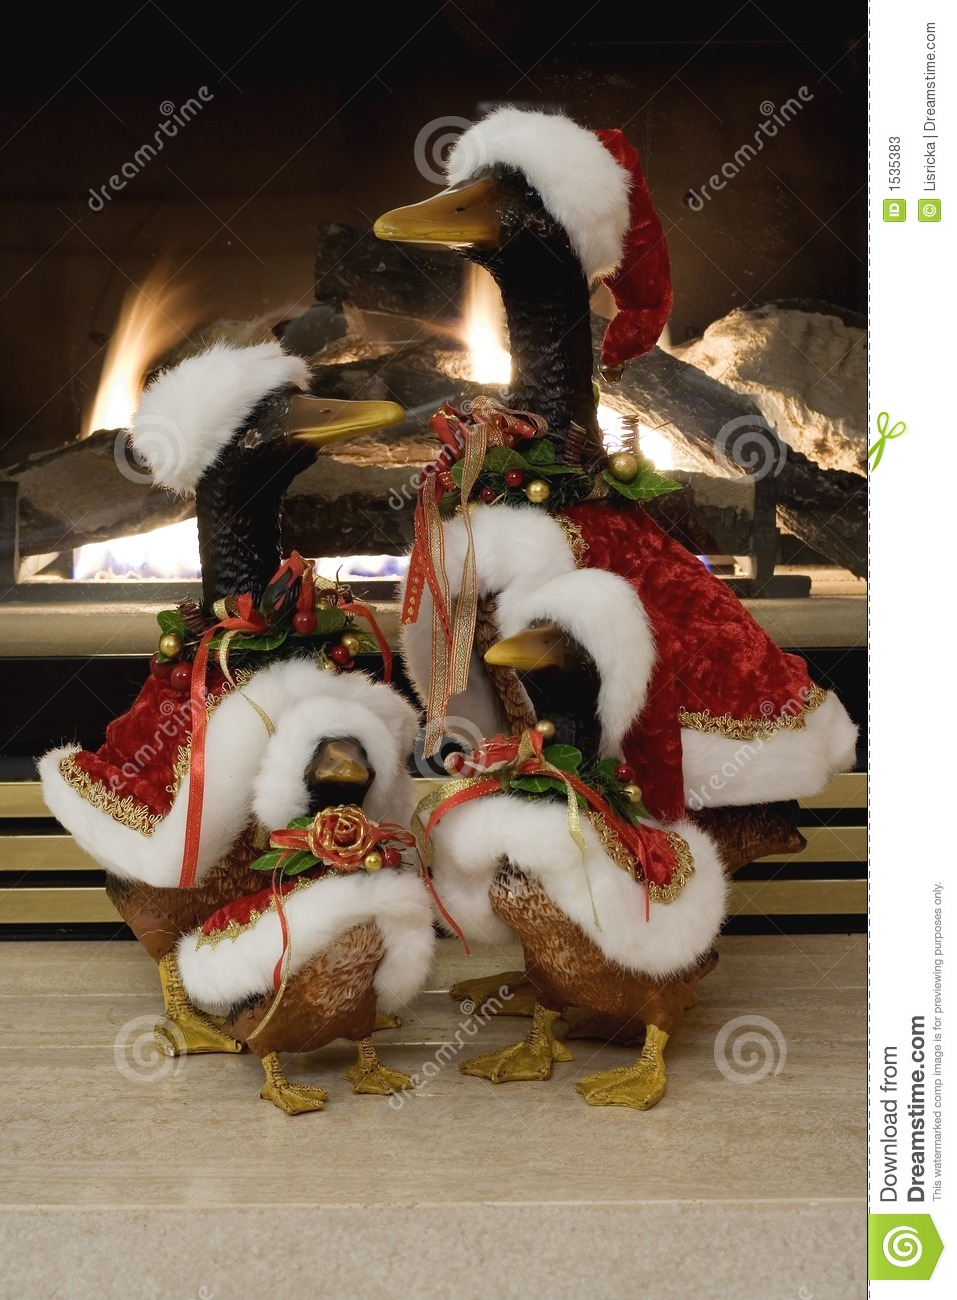 picture of christmas ducks - Christmas Duck